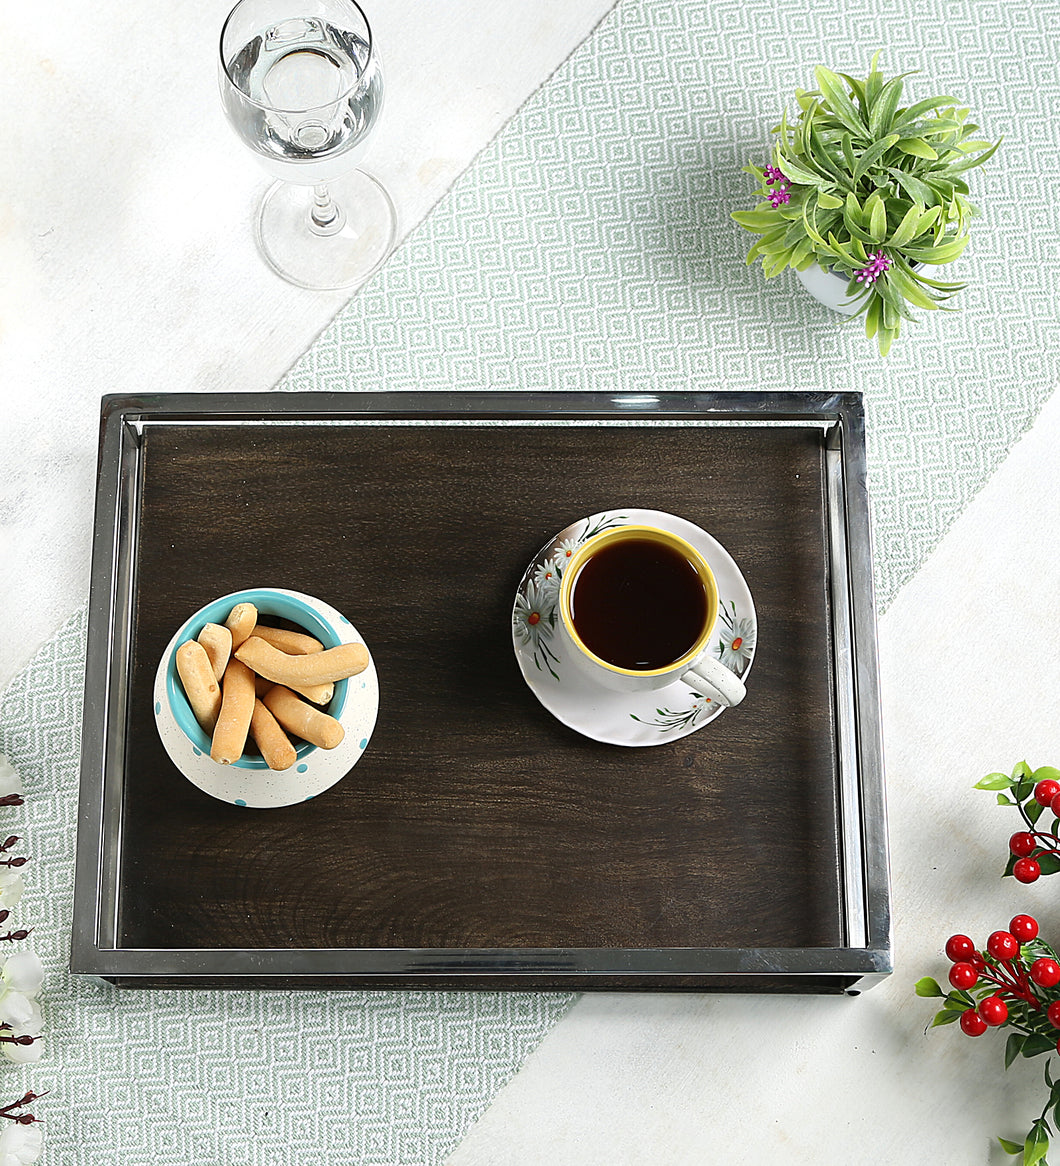 Crayton Steel Border Acacia Wood Large Serving Tray